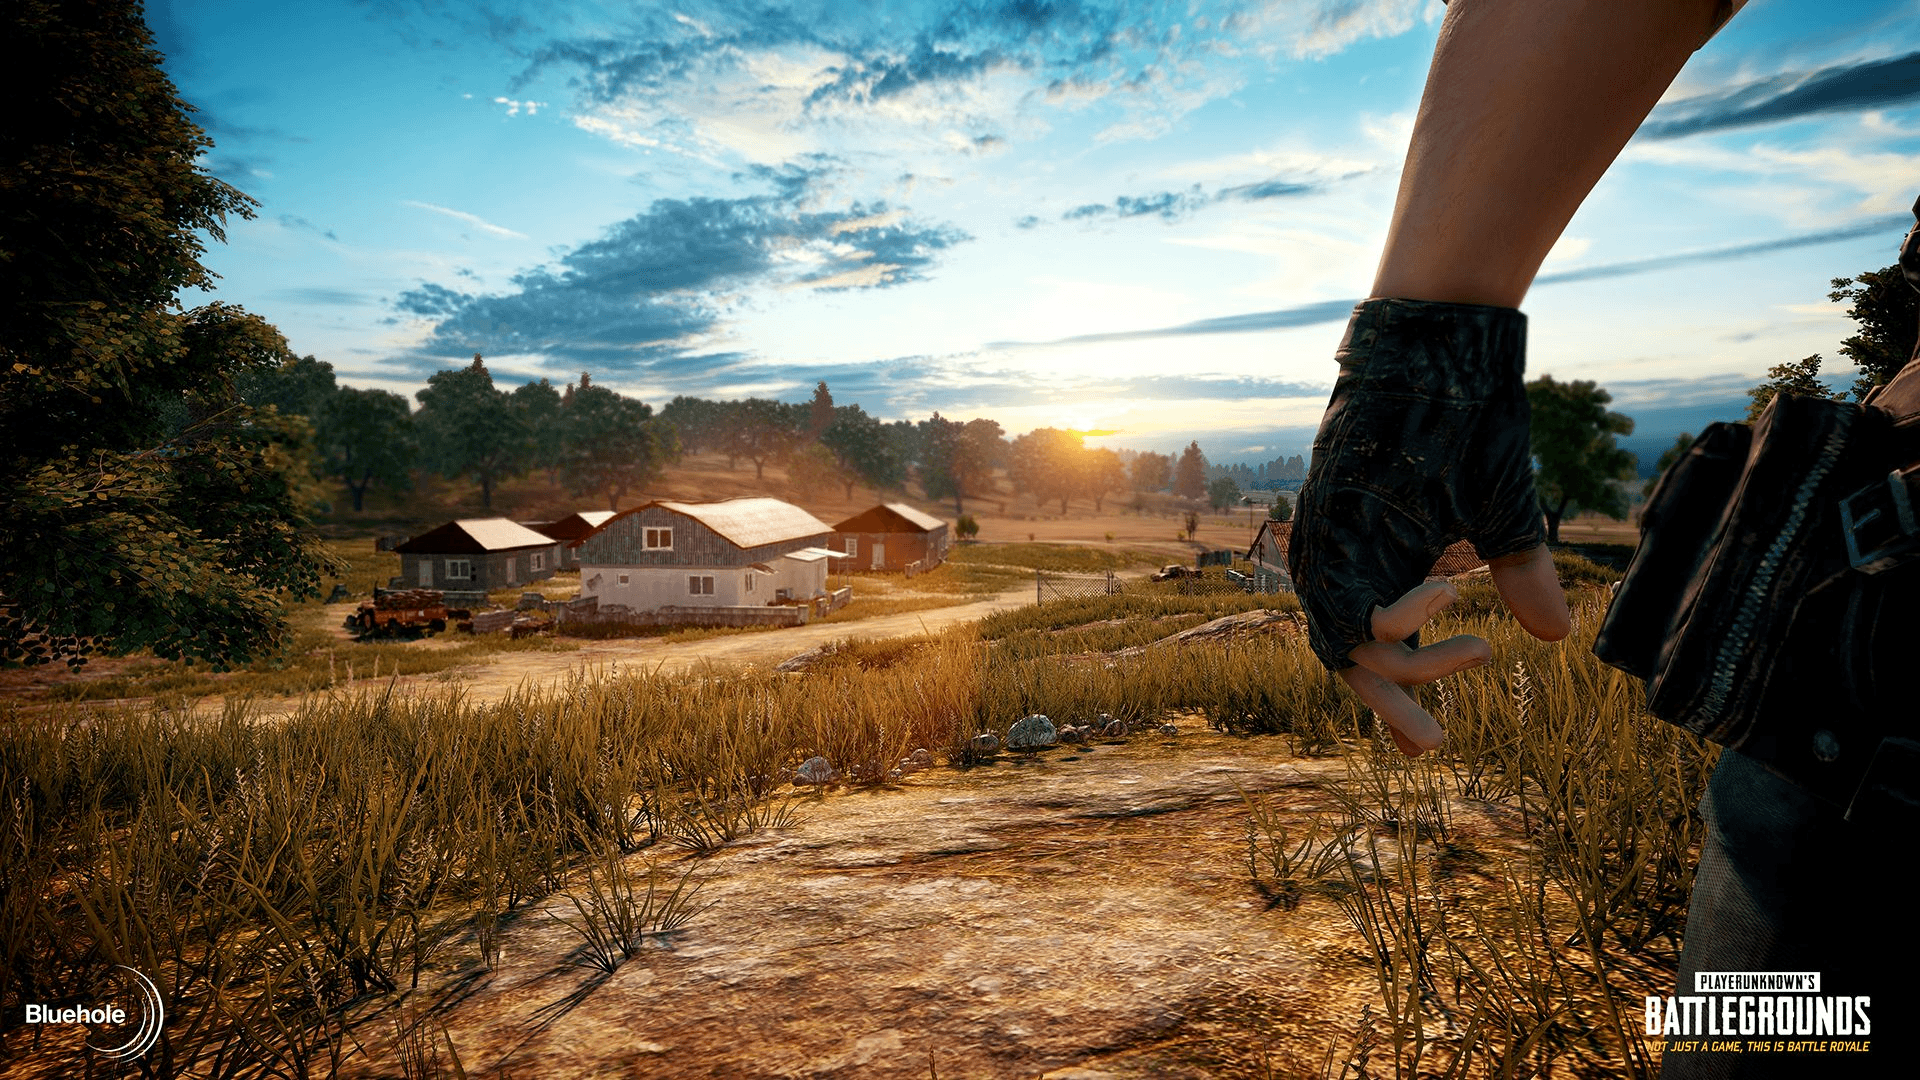 X Playerunknowns Battlegrounds Graphics Performance Revisited